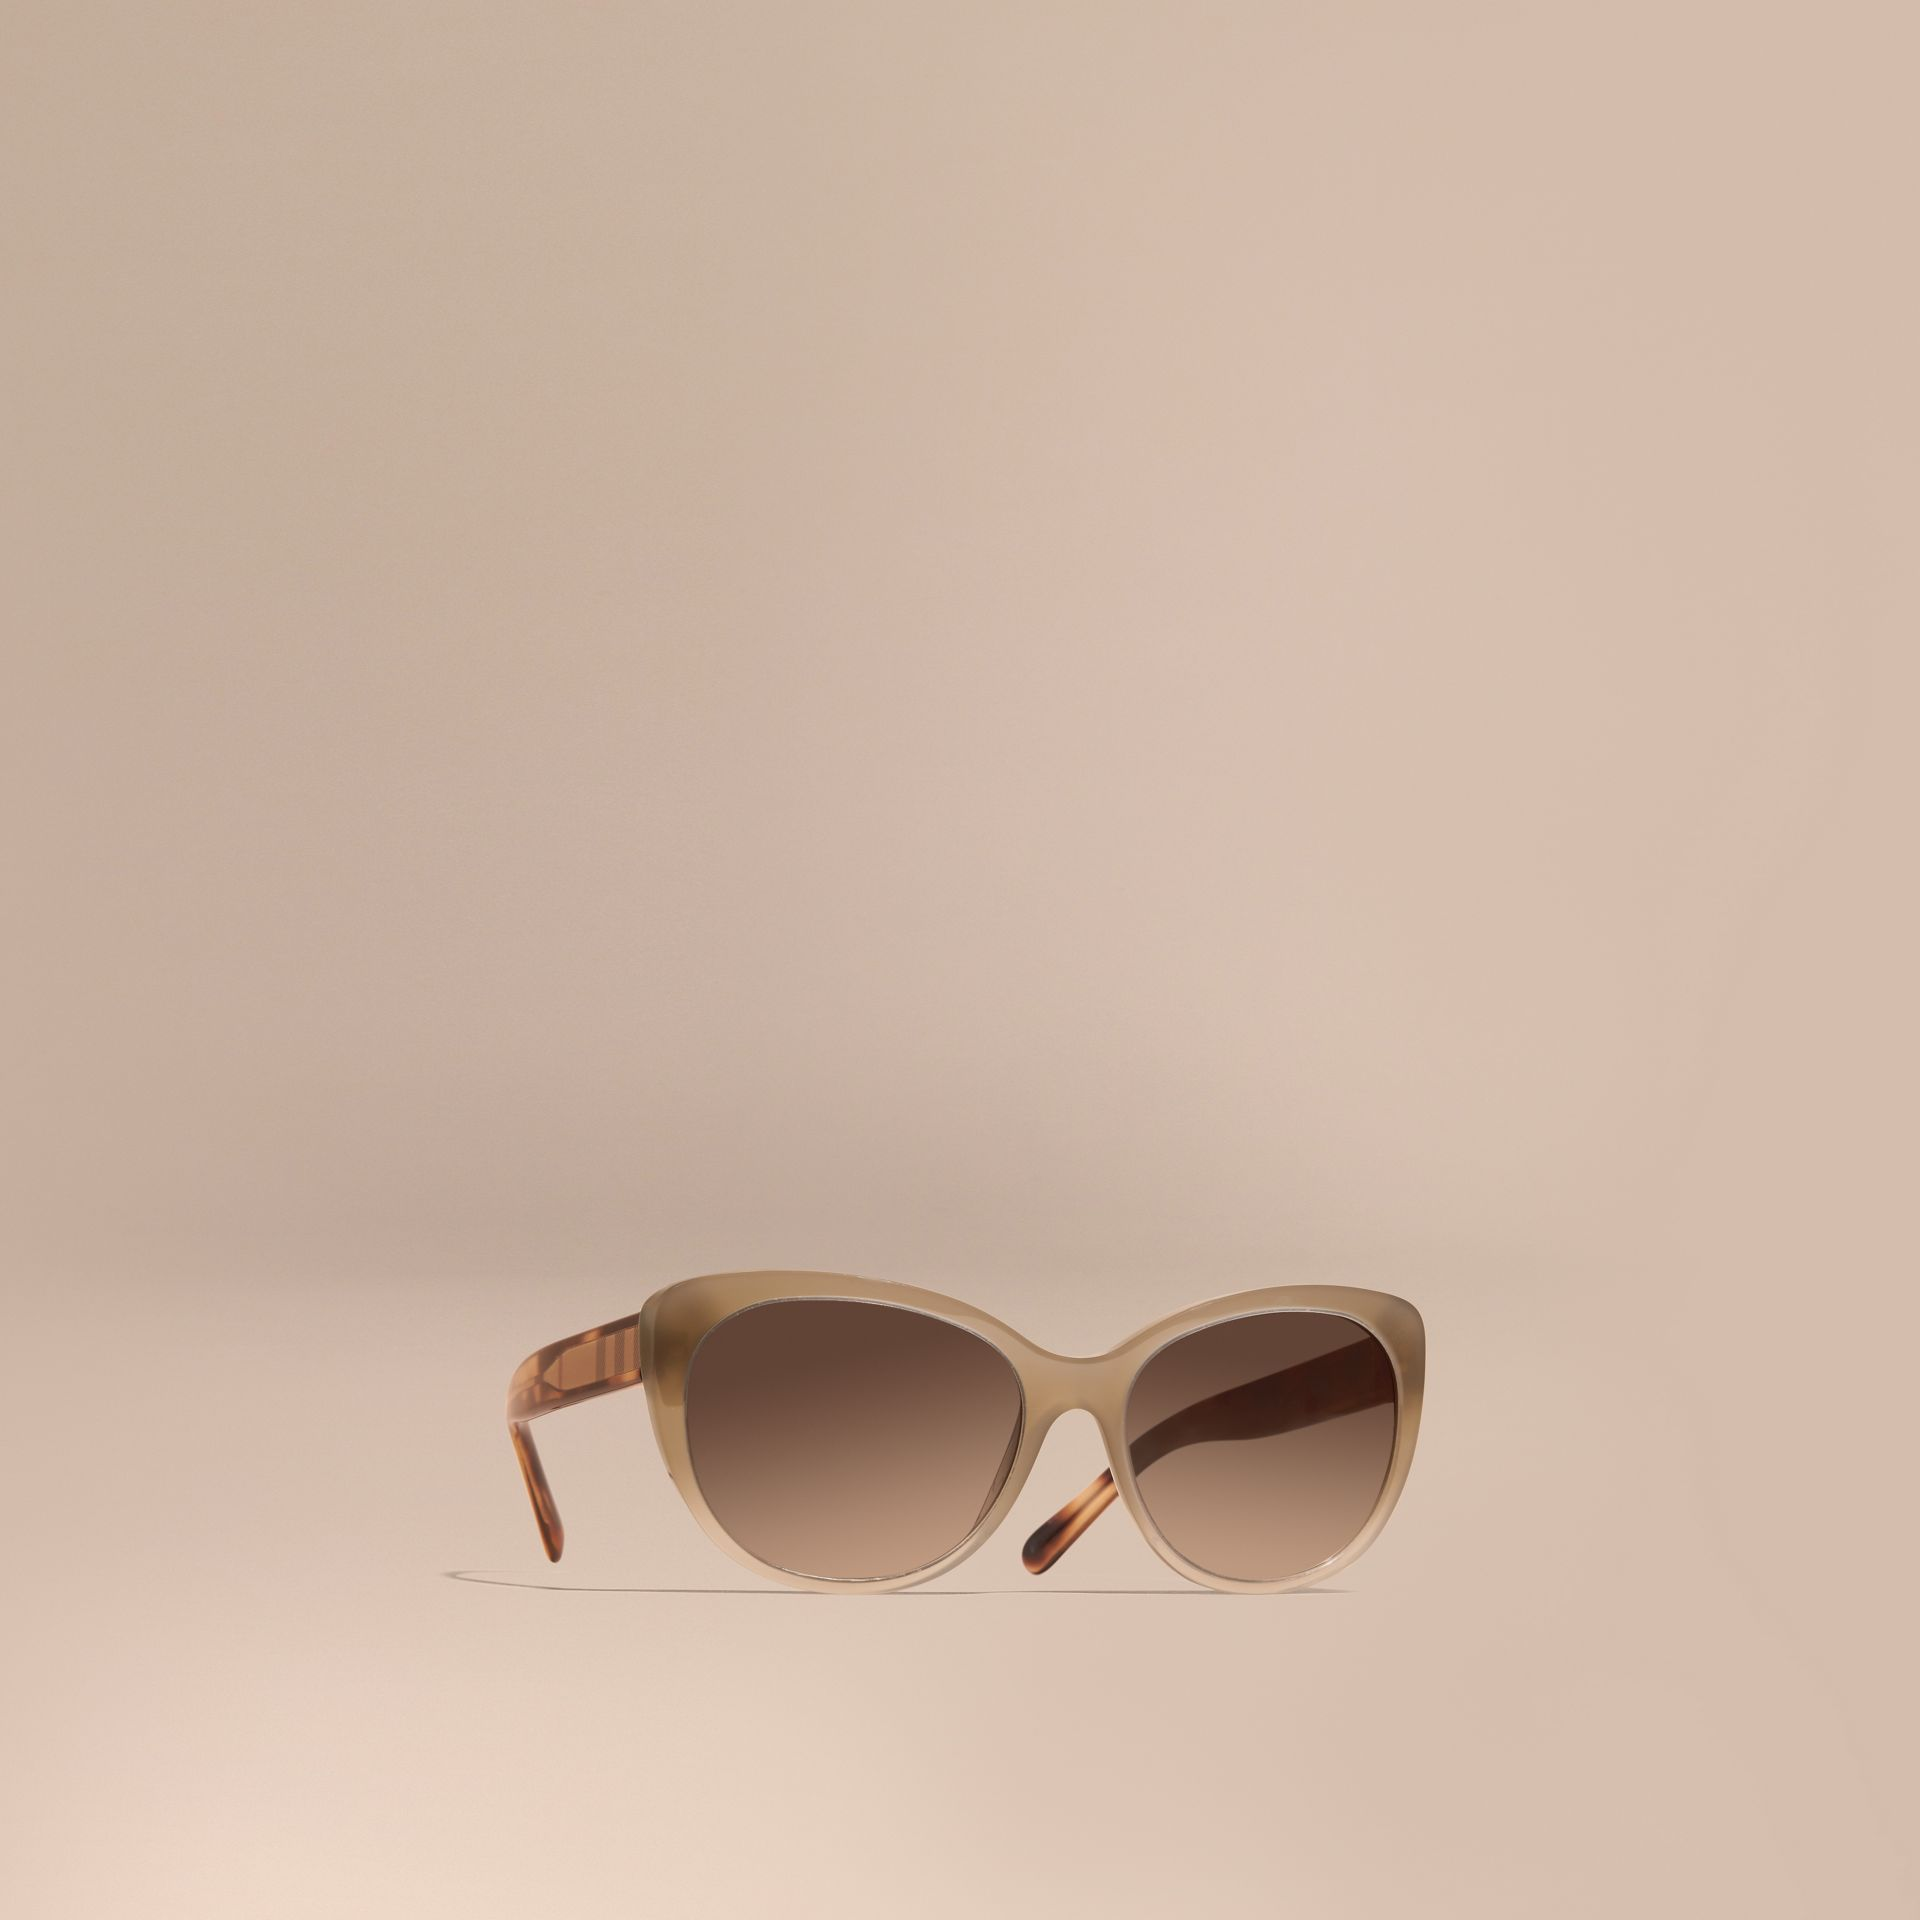 Chino grey Check Detail Cat-eye Sunglasses Chino Grey - gallery image 1